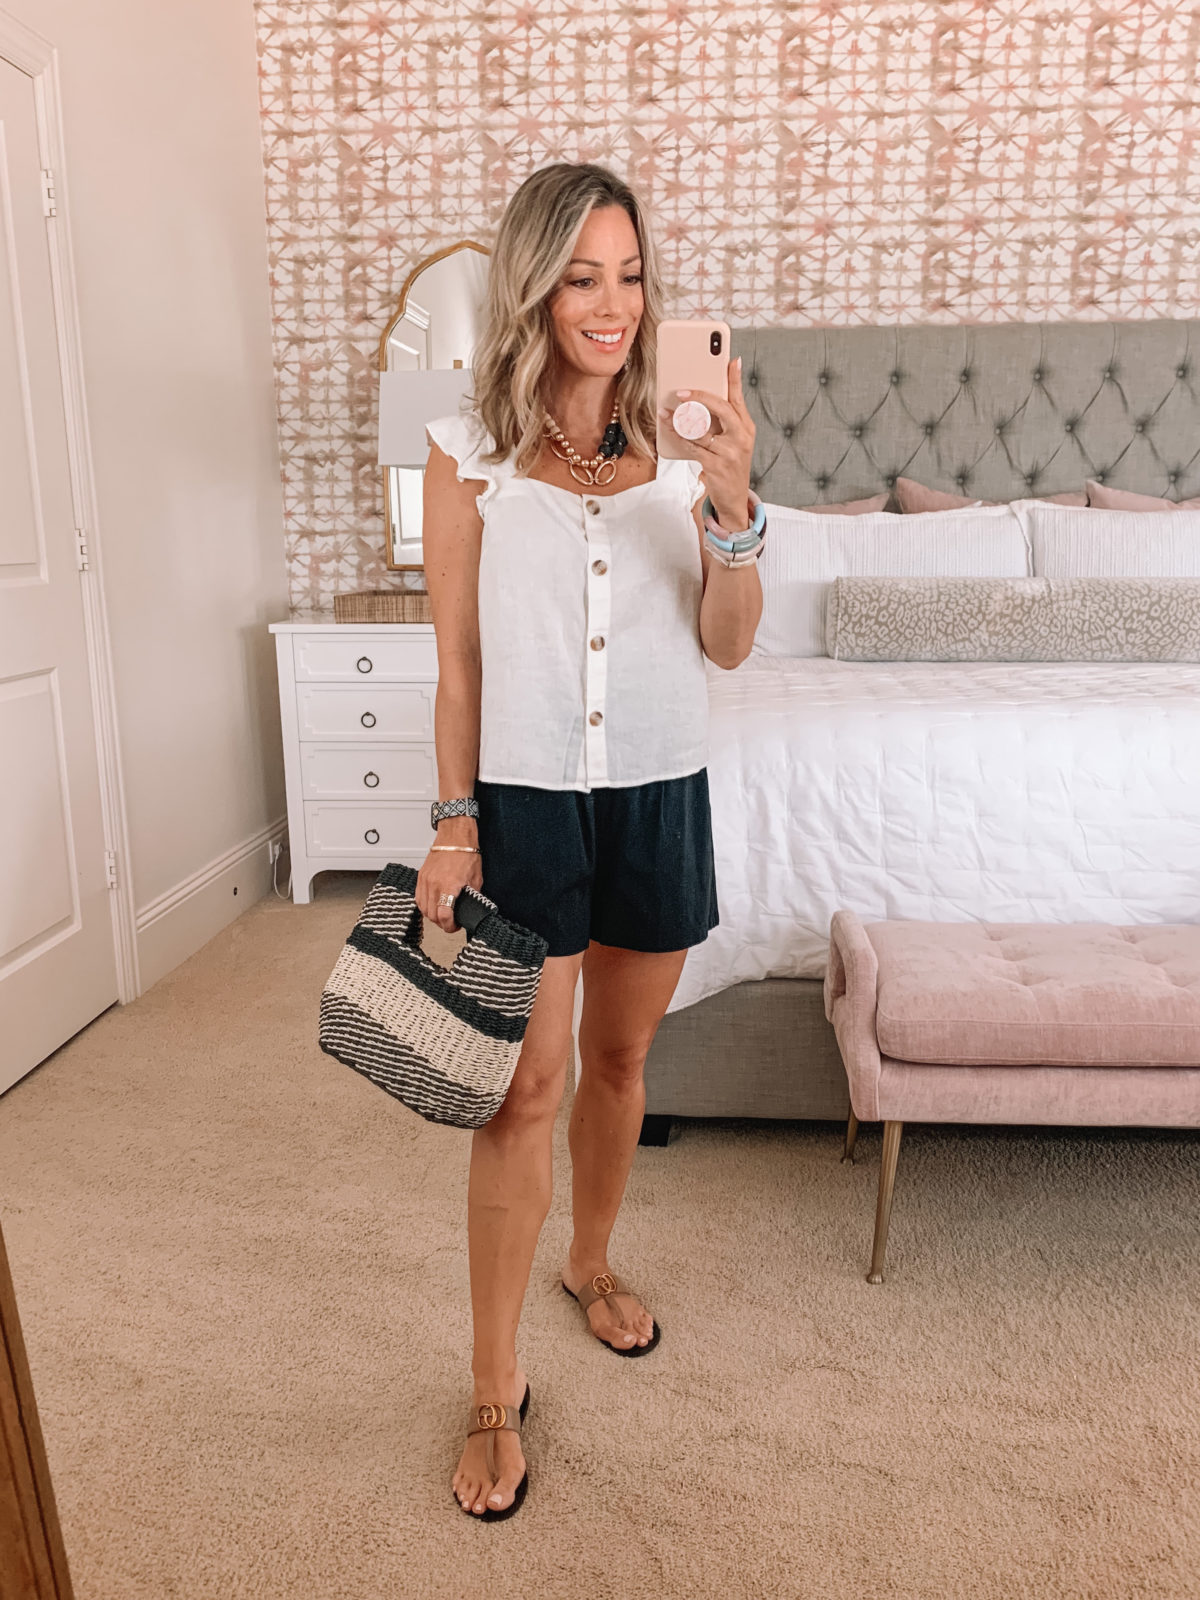 Dressing Room Finds, White Ruffle Sleeve Tank, Black Knit shorts, Sandals, Tote